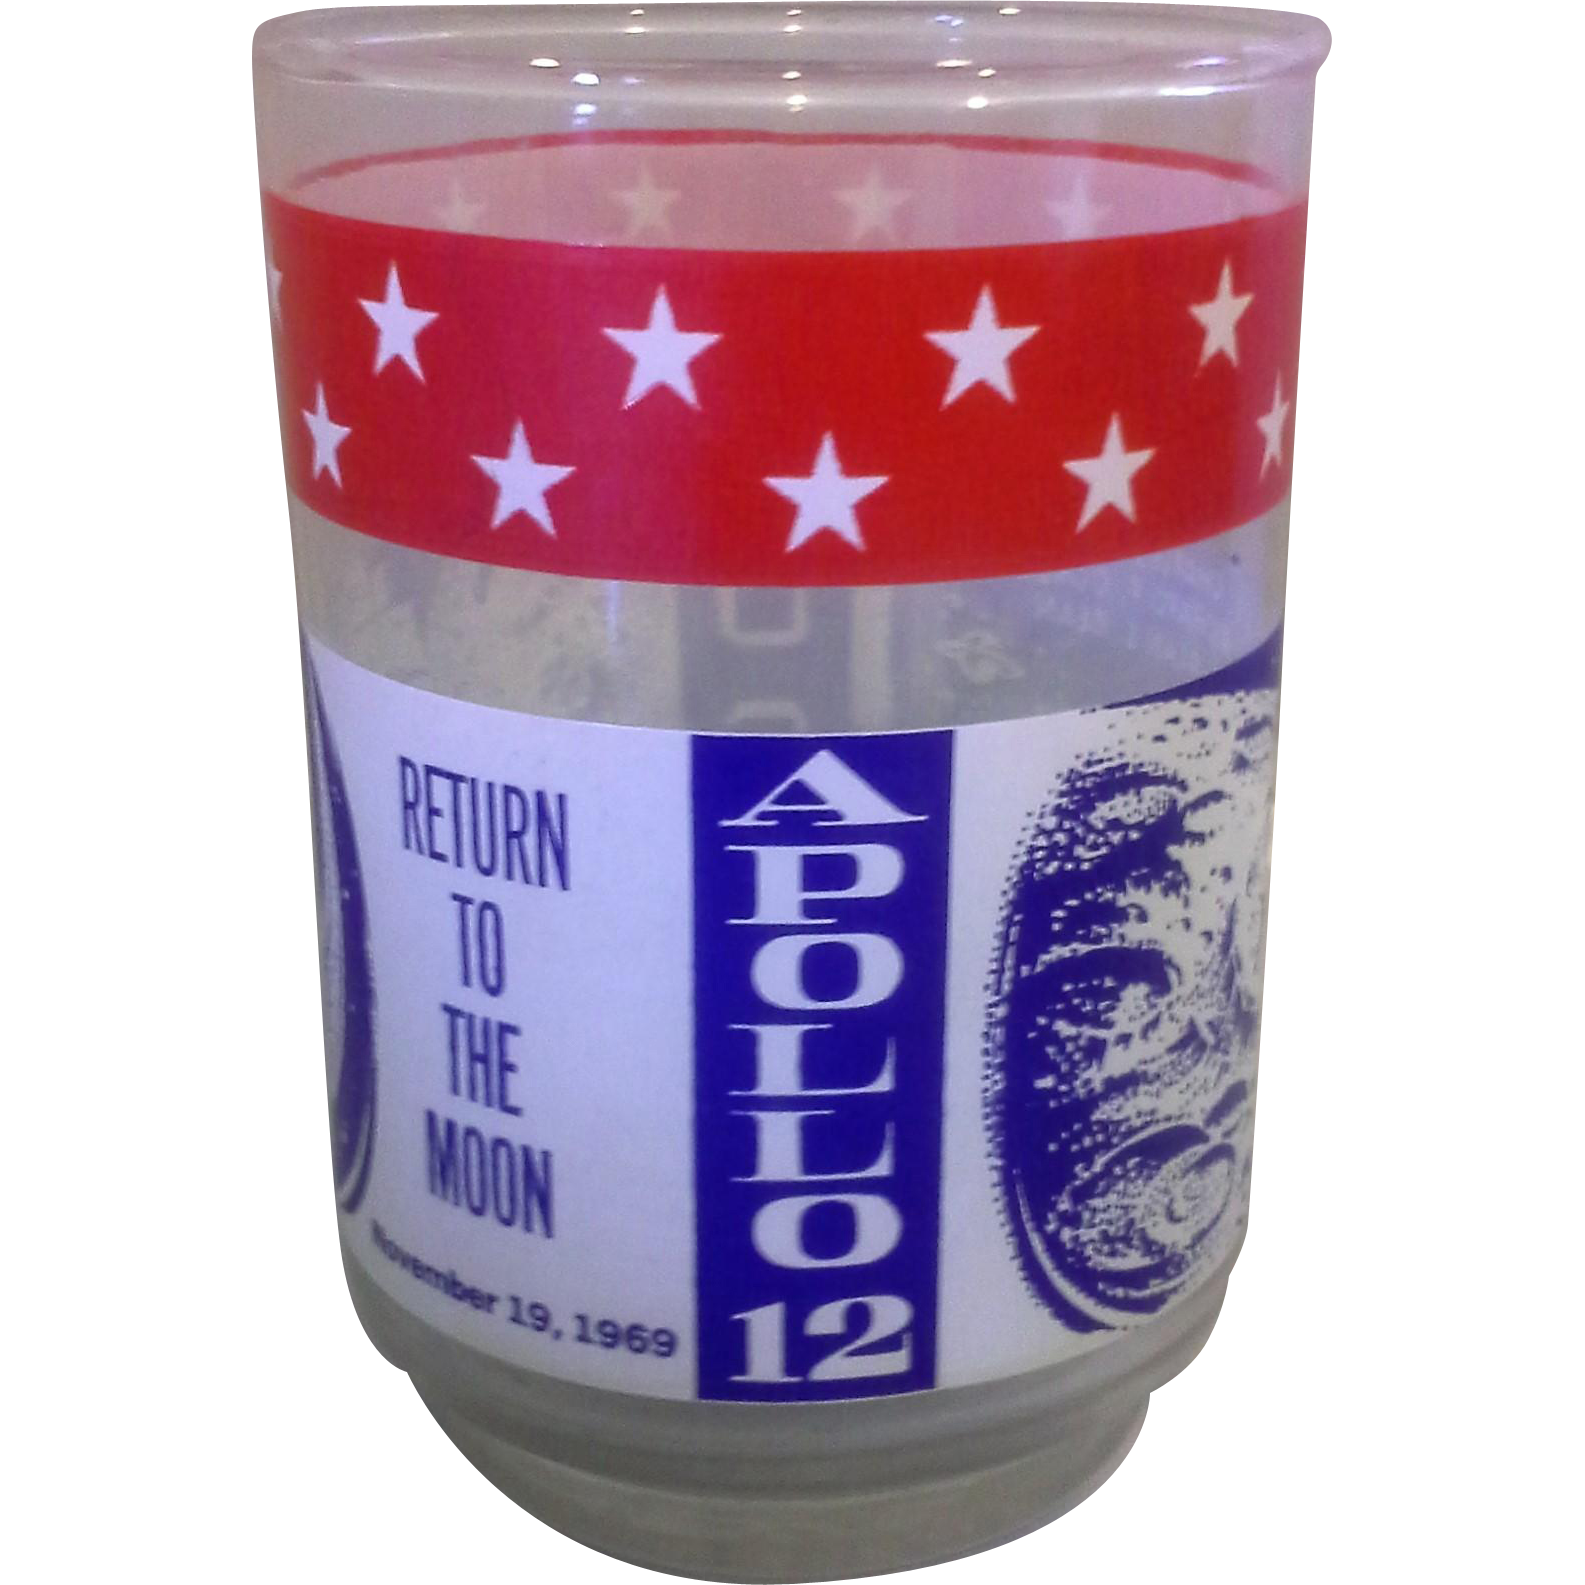 Apollo 12 Libbey Glass Tumbler Commemorative